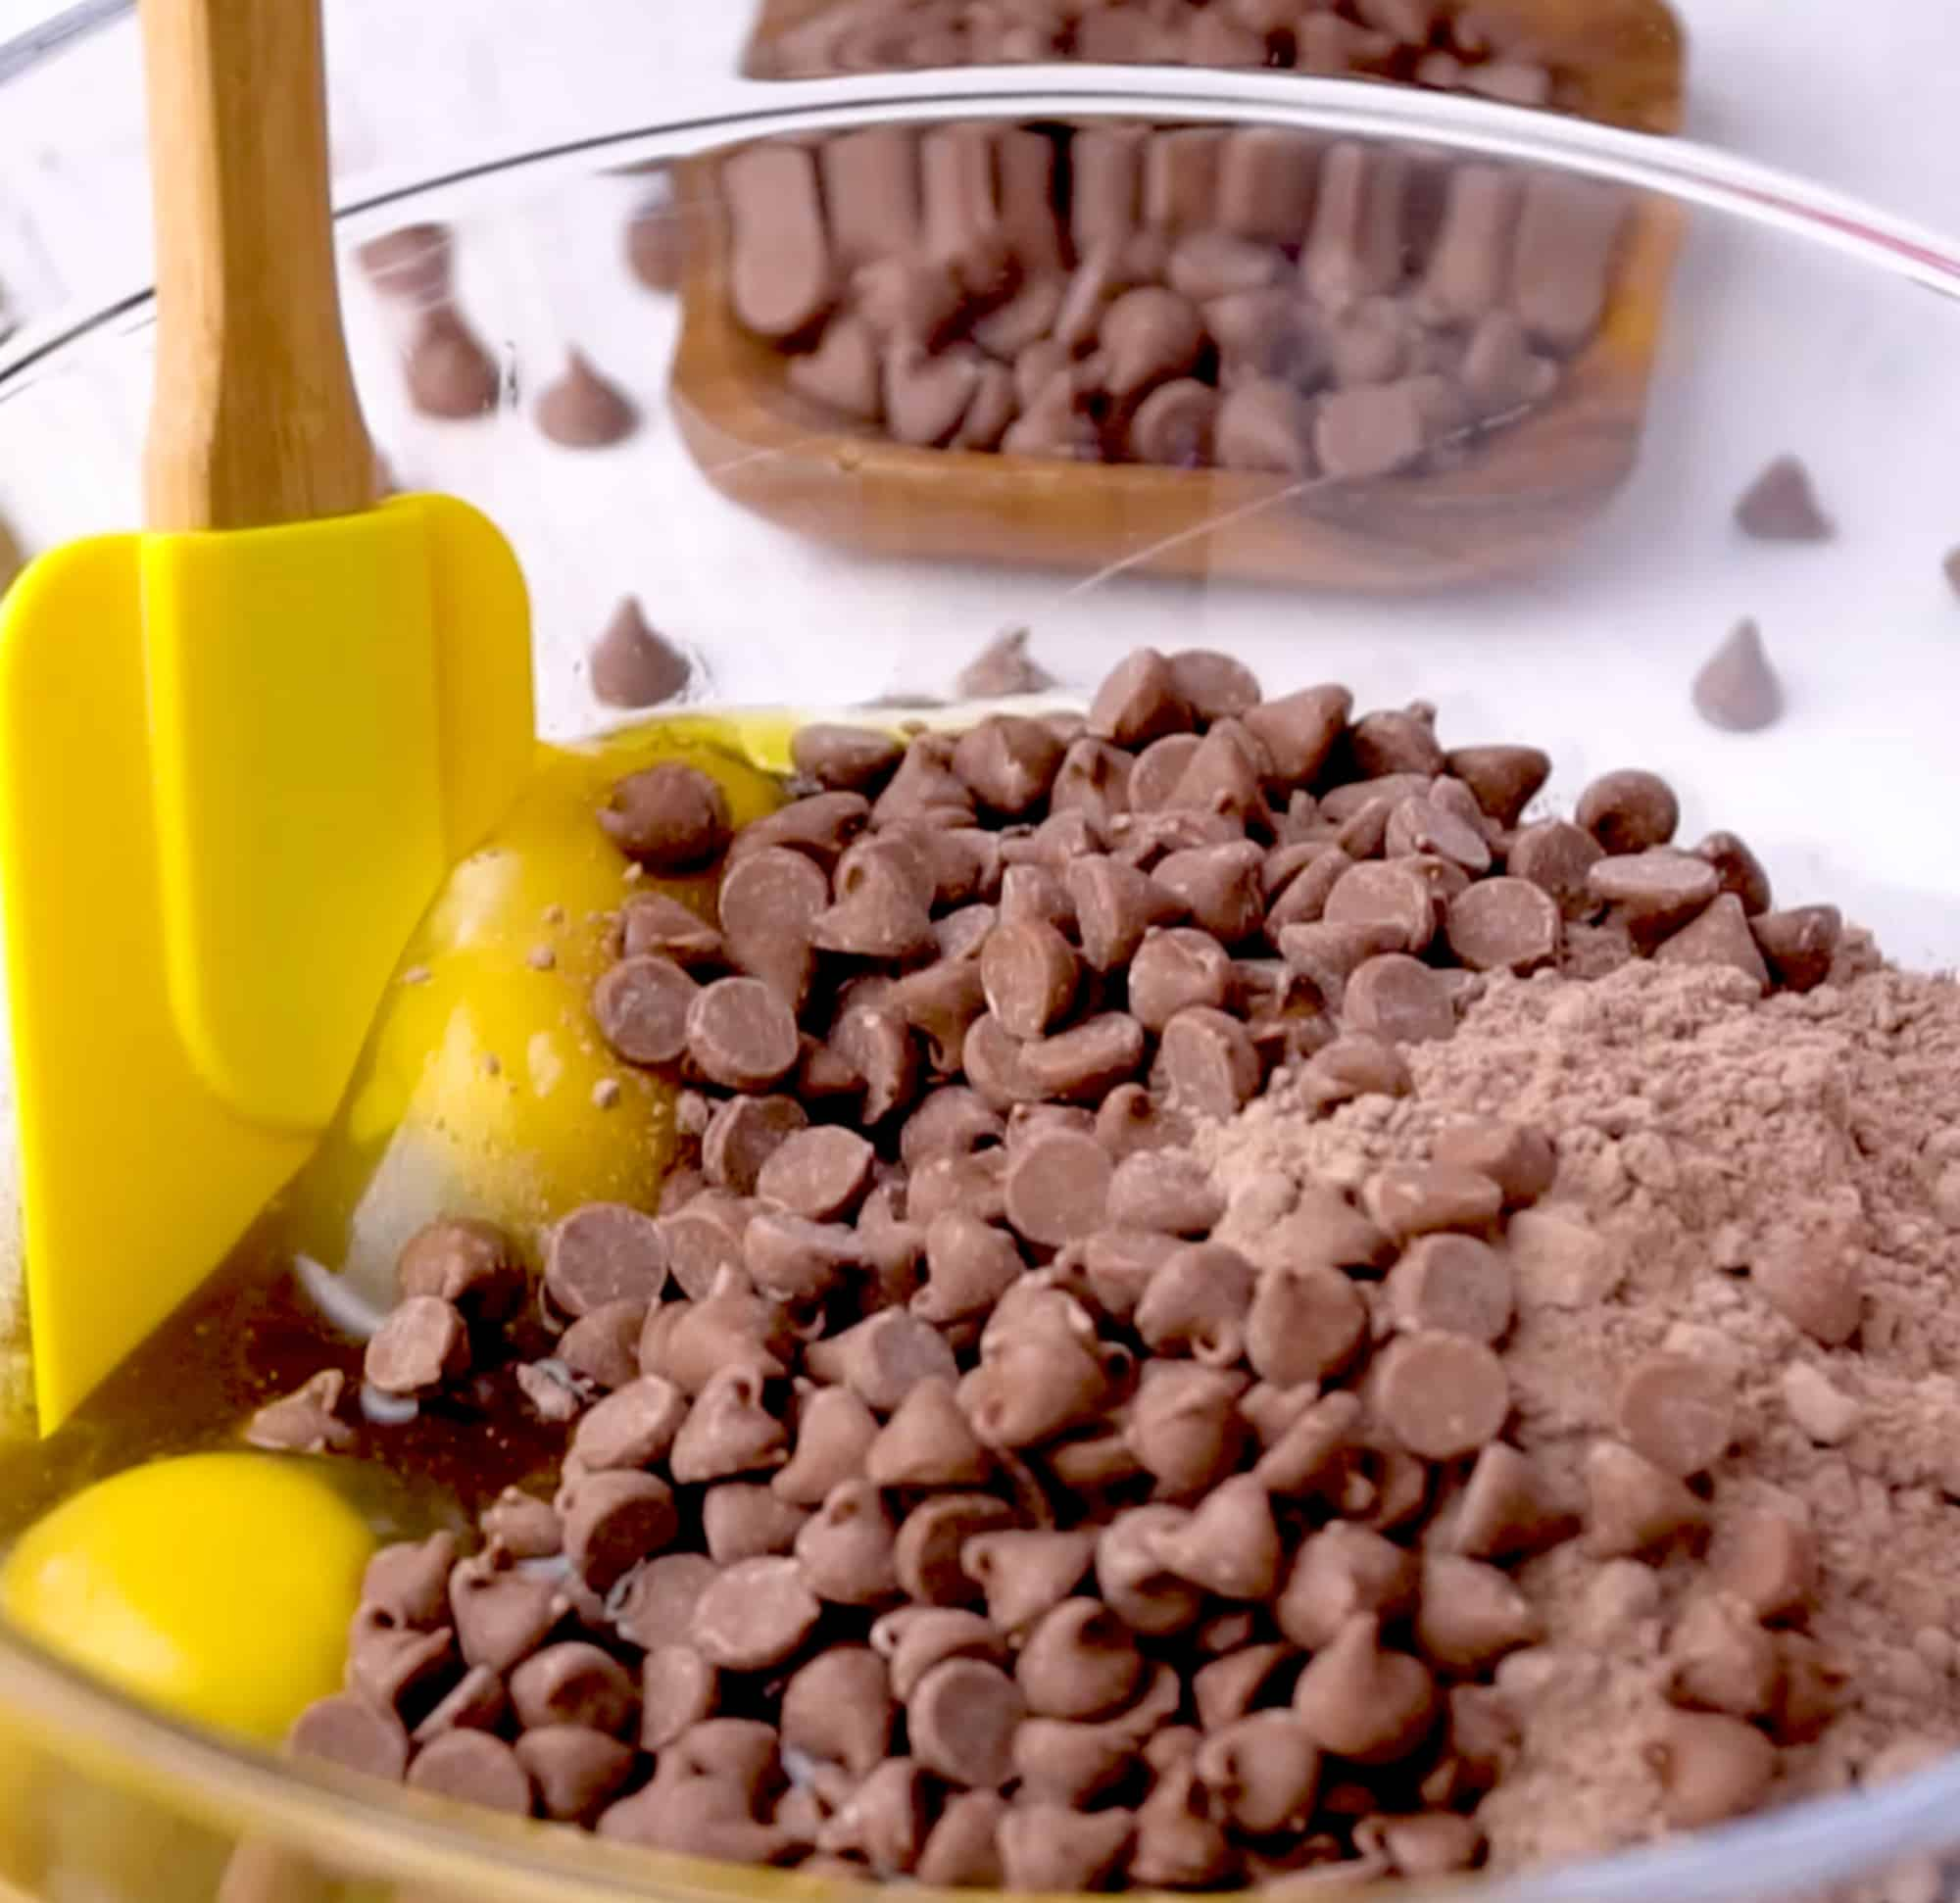 the ingredients in the bowl with a rubber spatula